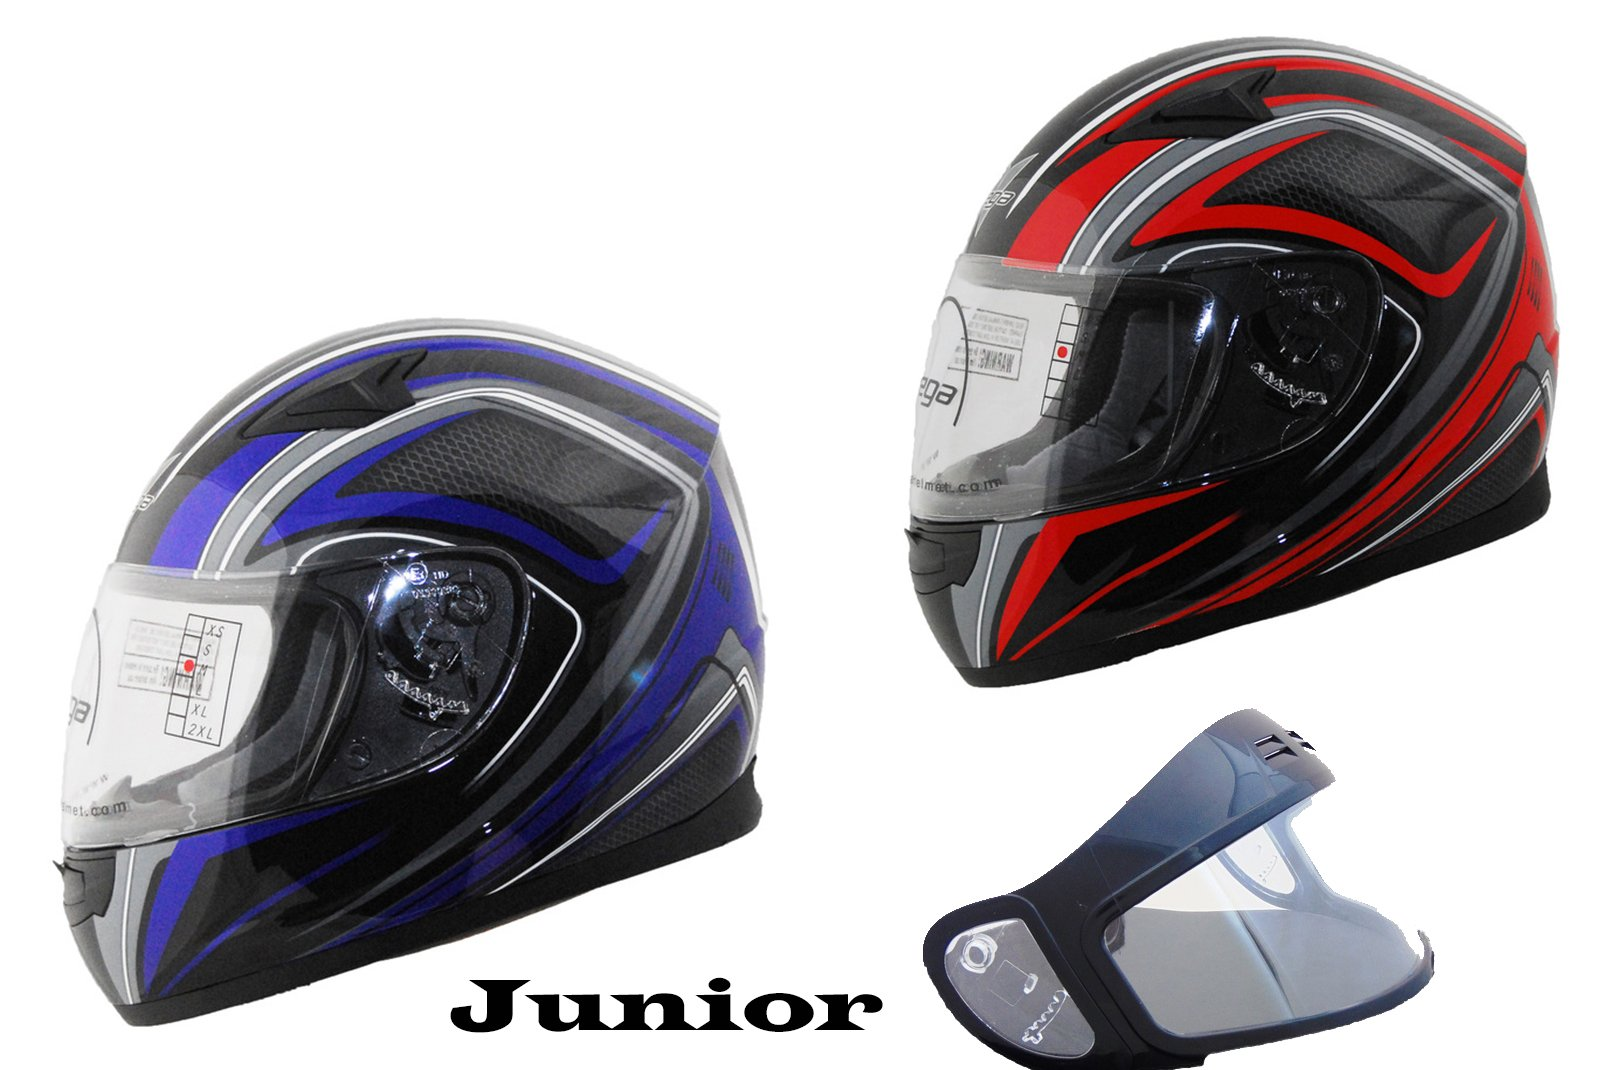 Casque de moto, scooter et VTT Vega Junior